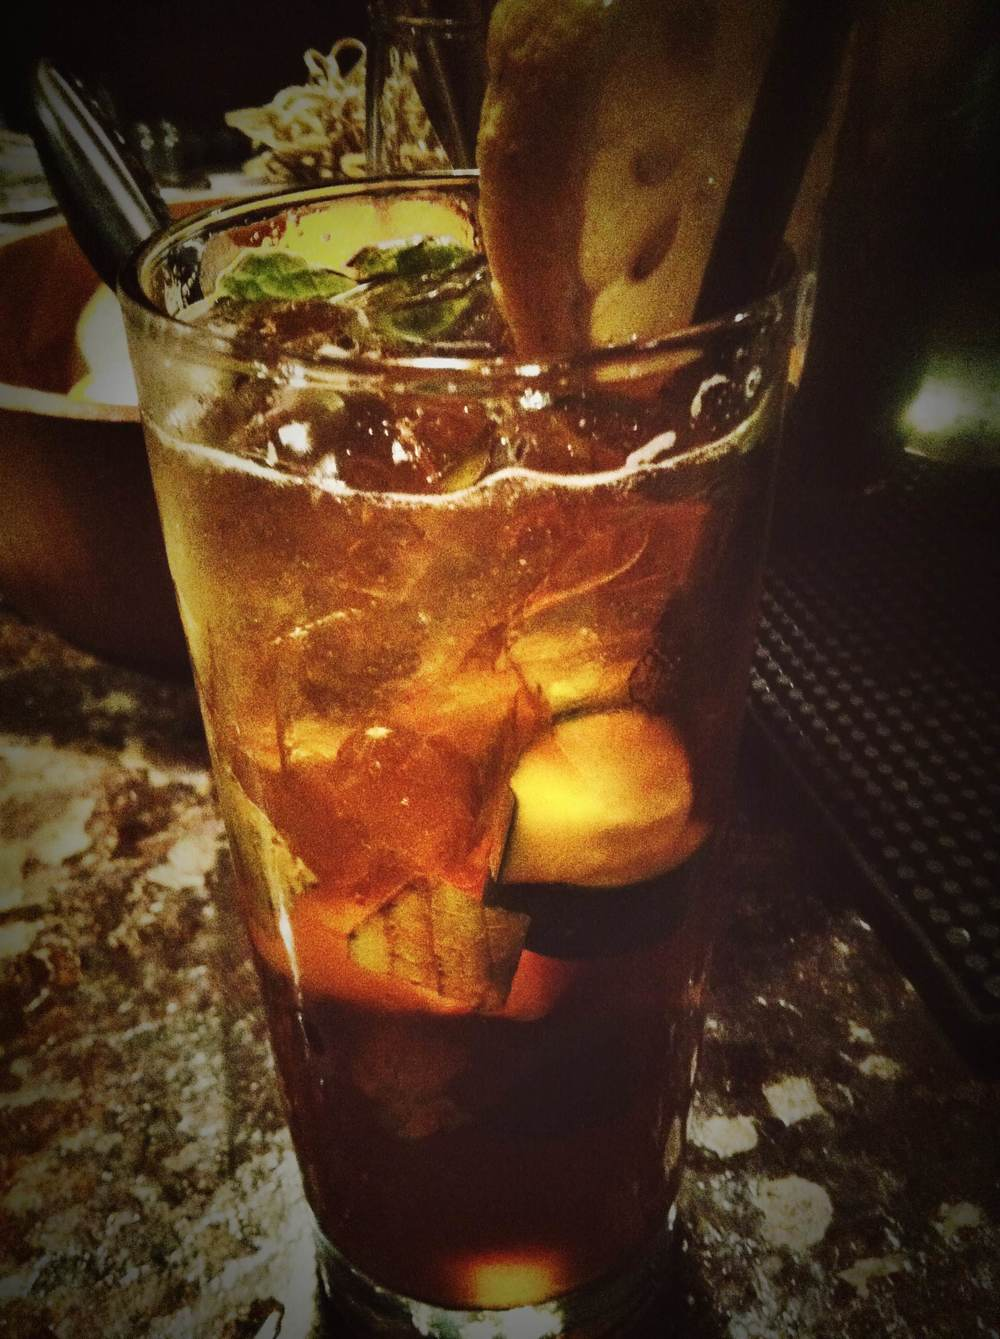 A go-to for keeping cool this summer - the Pimm's Cup at Paschall's